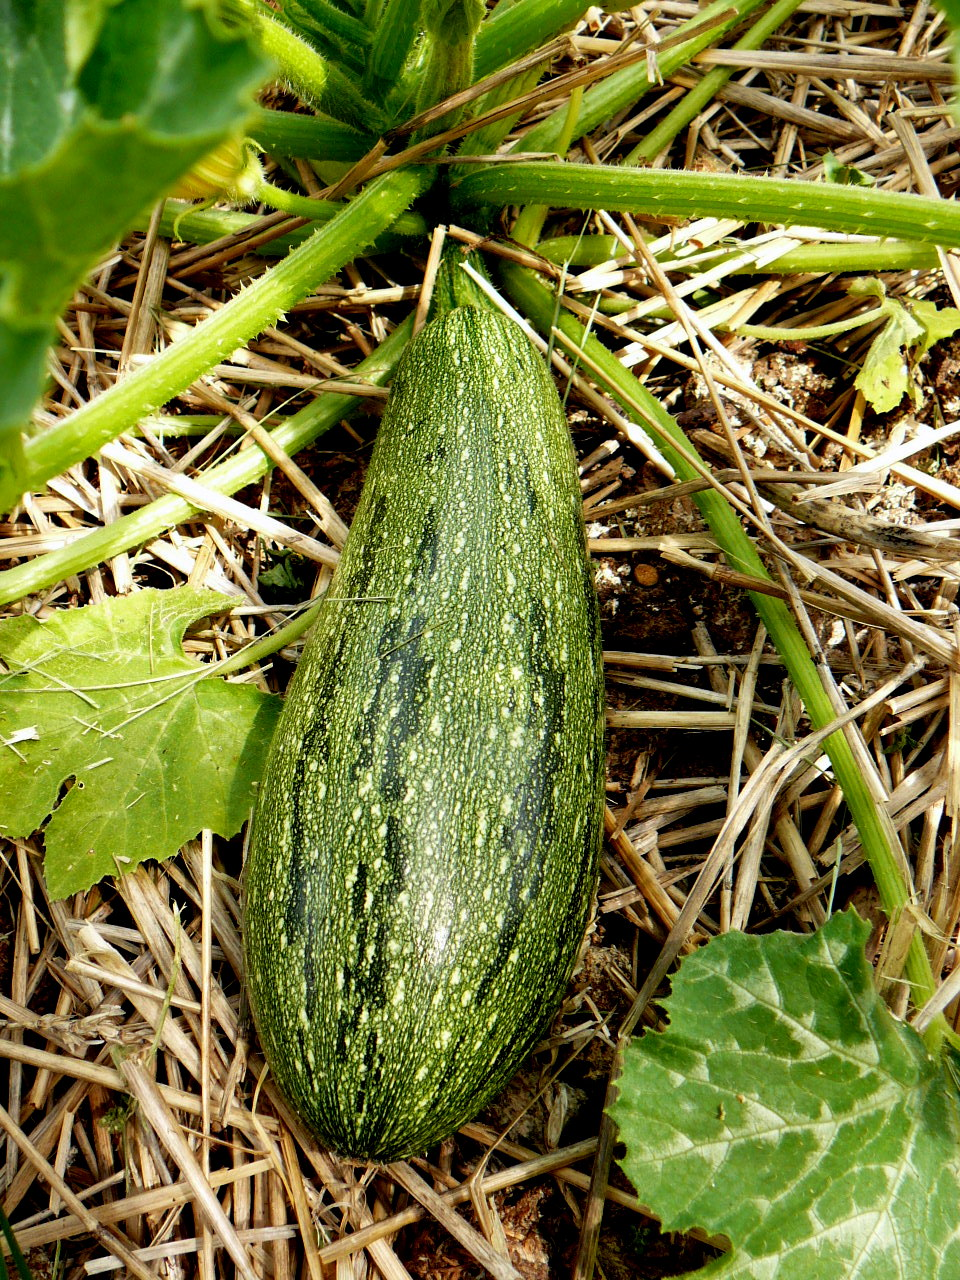 gray striped zucchini.jpg